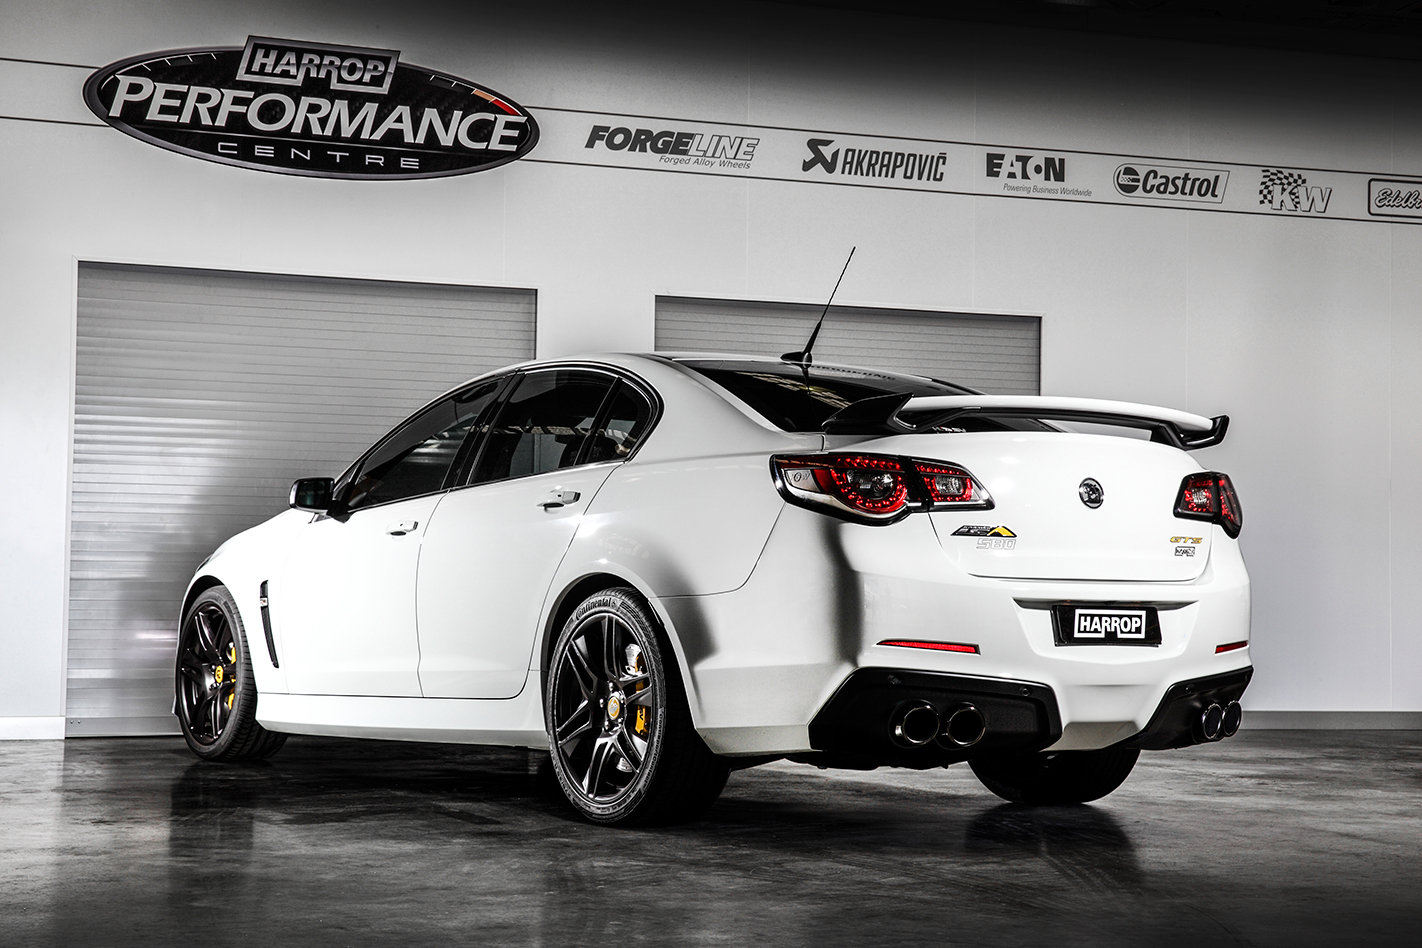 Harrop HSV GTS 580 review